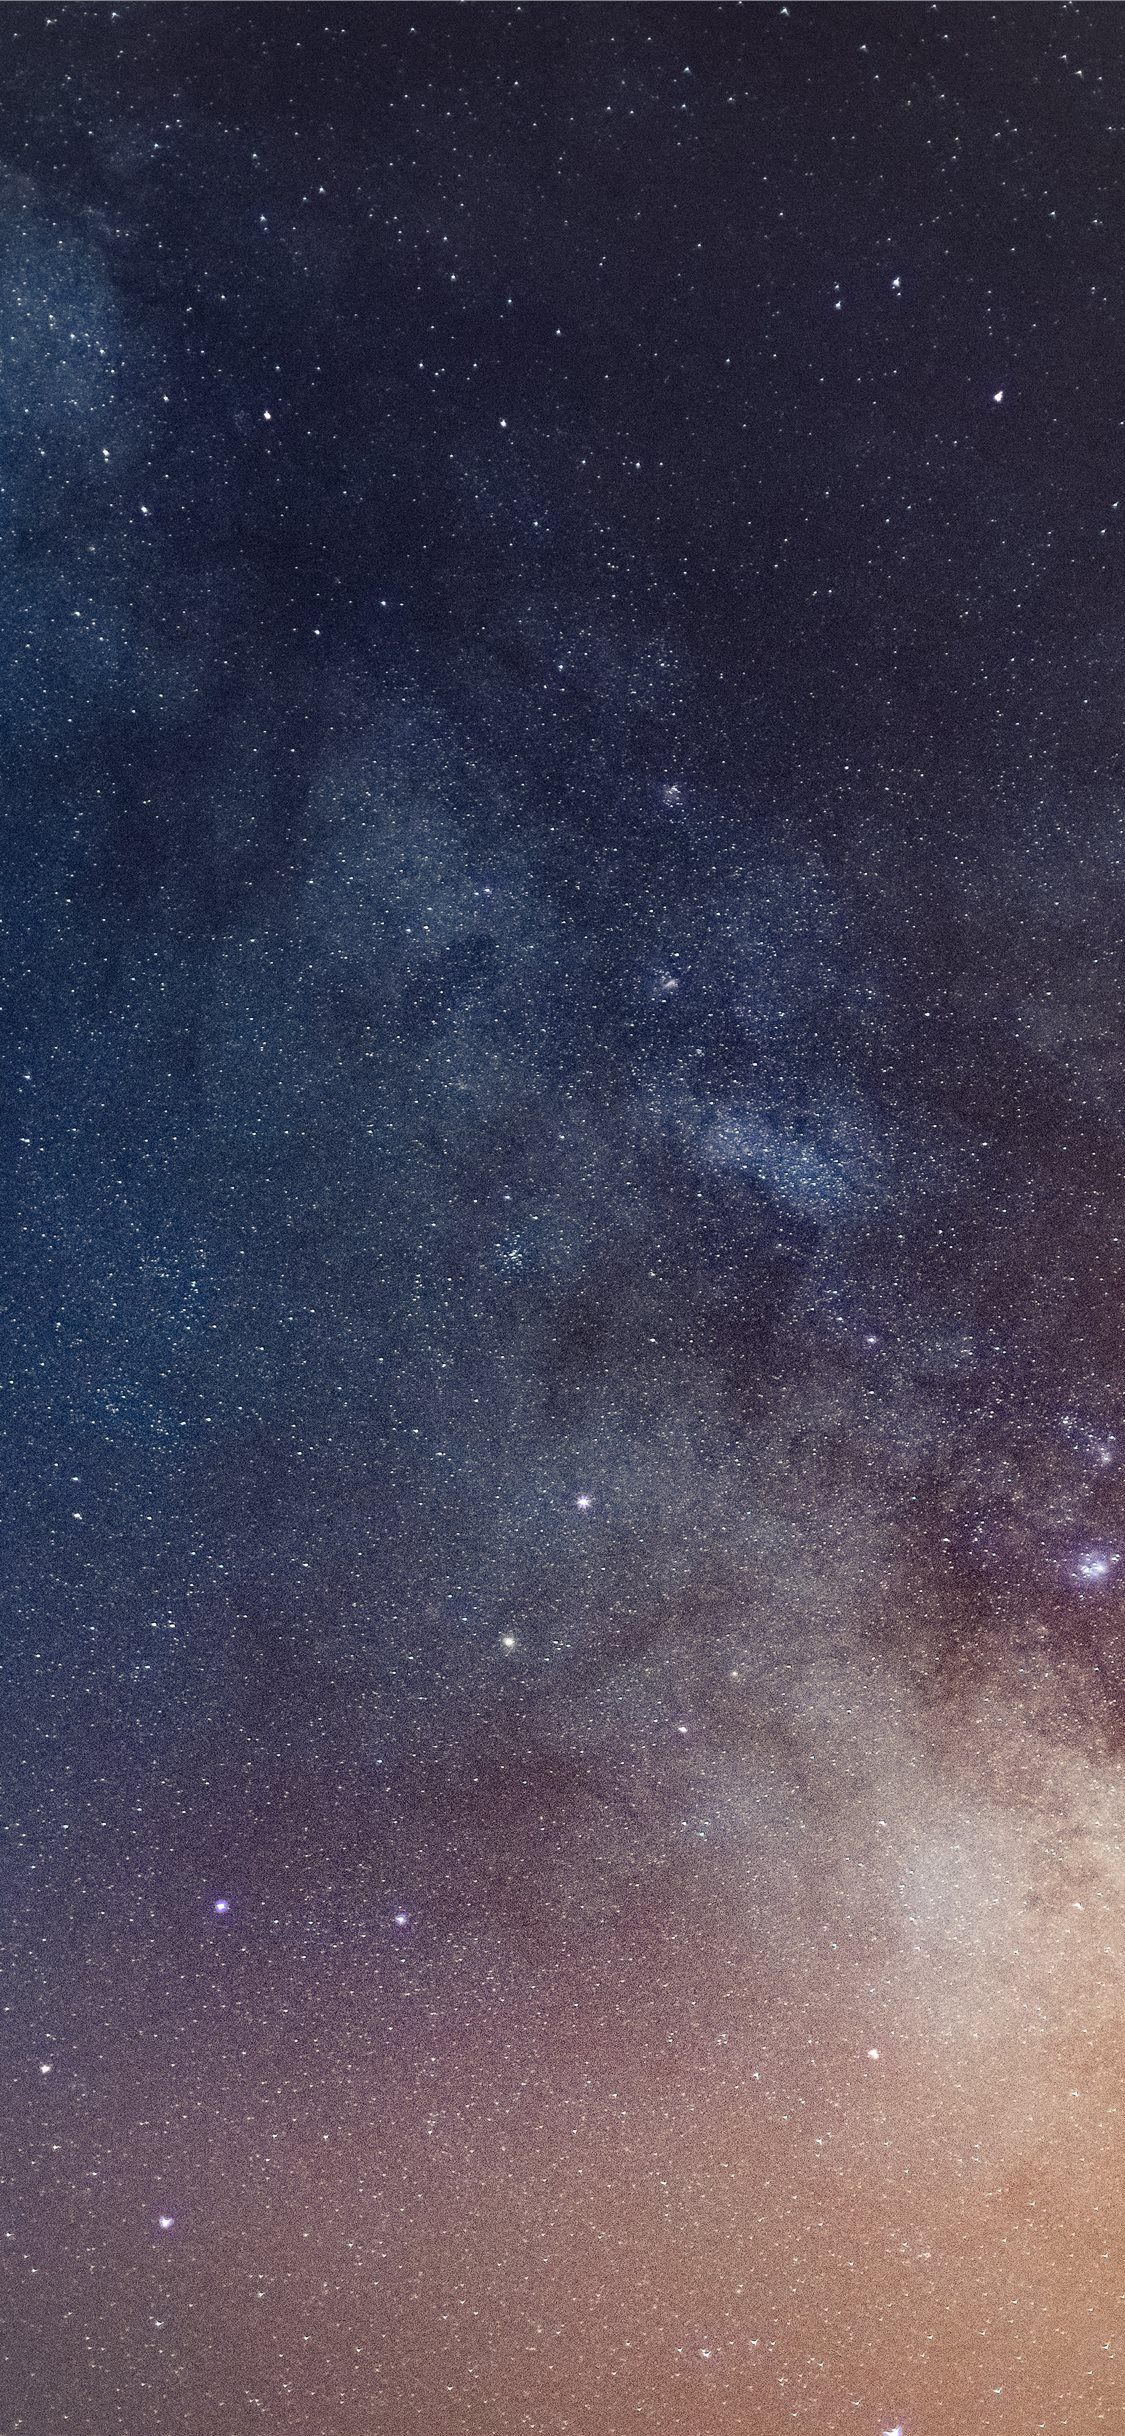 Blue And Orange Starry Night Sky Nature Space Outerspace Grey Galaxy Cerroazul Por Cool Wallpapers For Phones Starry Night Wallpaper Cute Girl Wallpaper